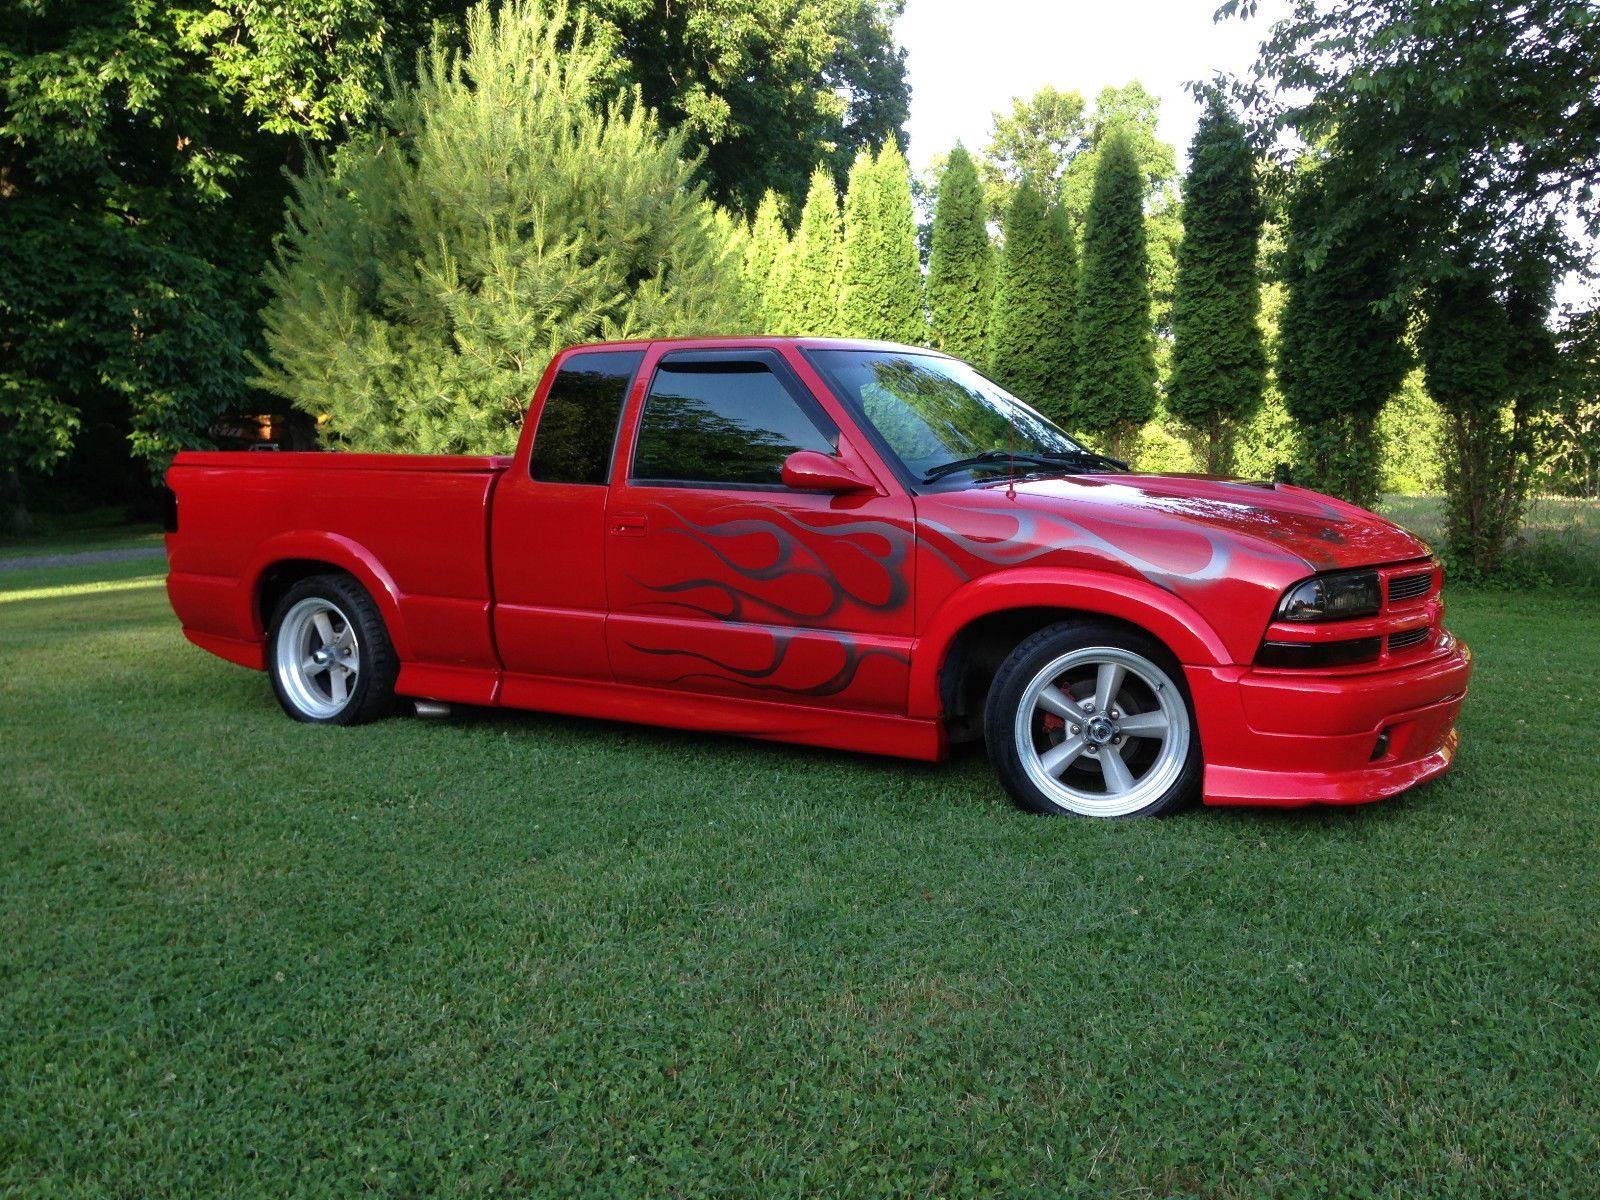 1996 chevy S10 Extreme Click to find out more  http